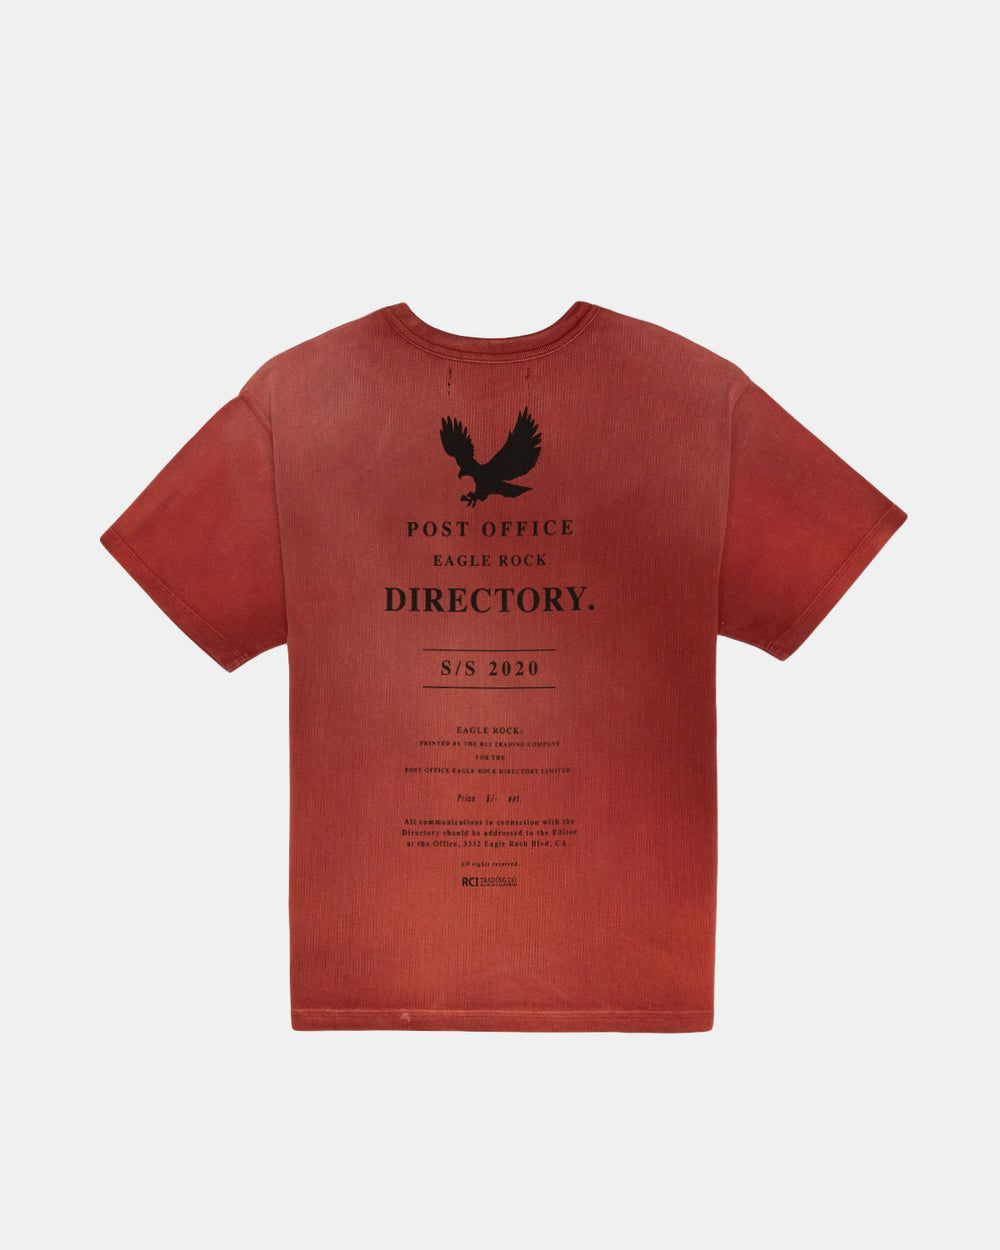 Reese - Post Office Directory Aged Tee (Red)